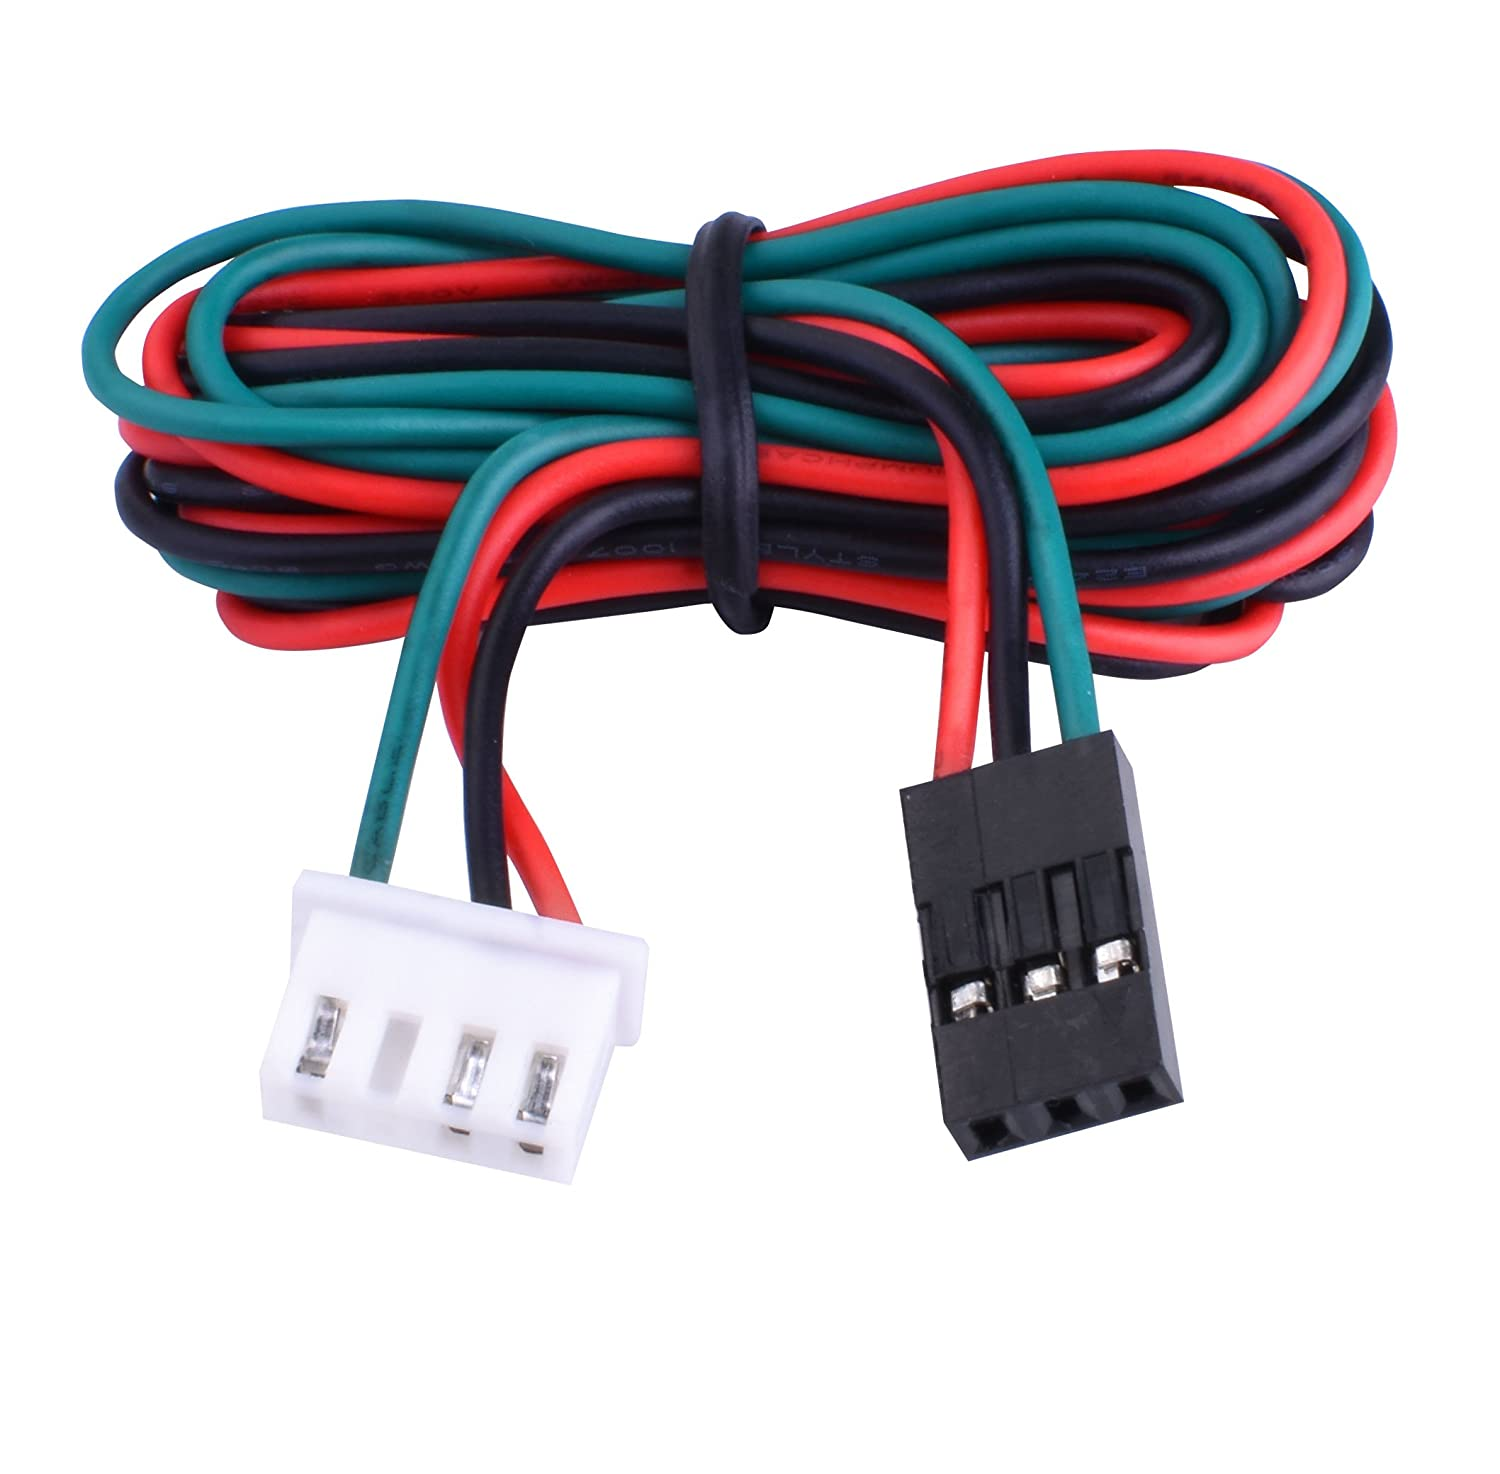 Longruner 6 X Mechanical Endstop Limit Switch With 22awg Diagram Along Cnc Wiring Cable For 3d Printer Makerbot Prusa Mendel Reprap Arduino Mega 2560 Ramps 14